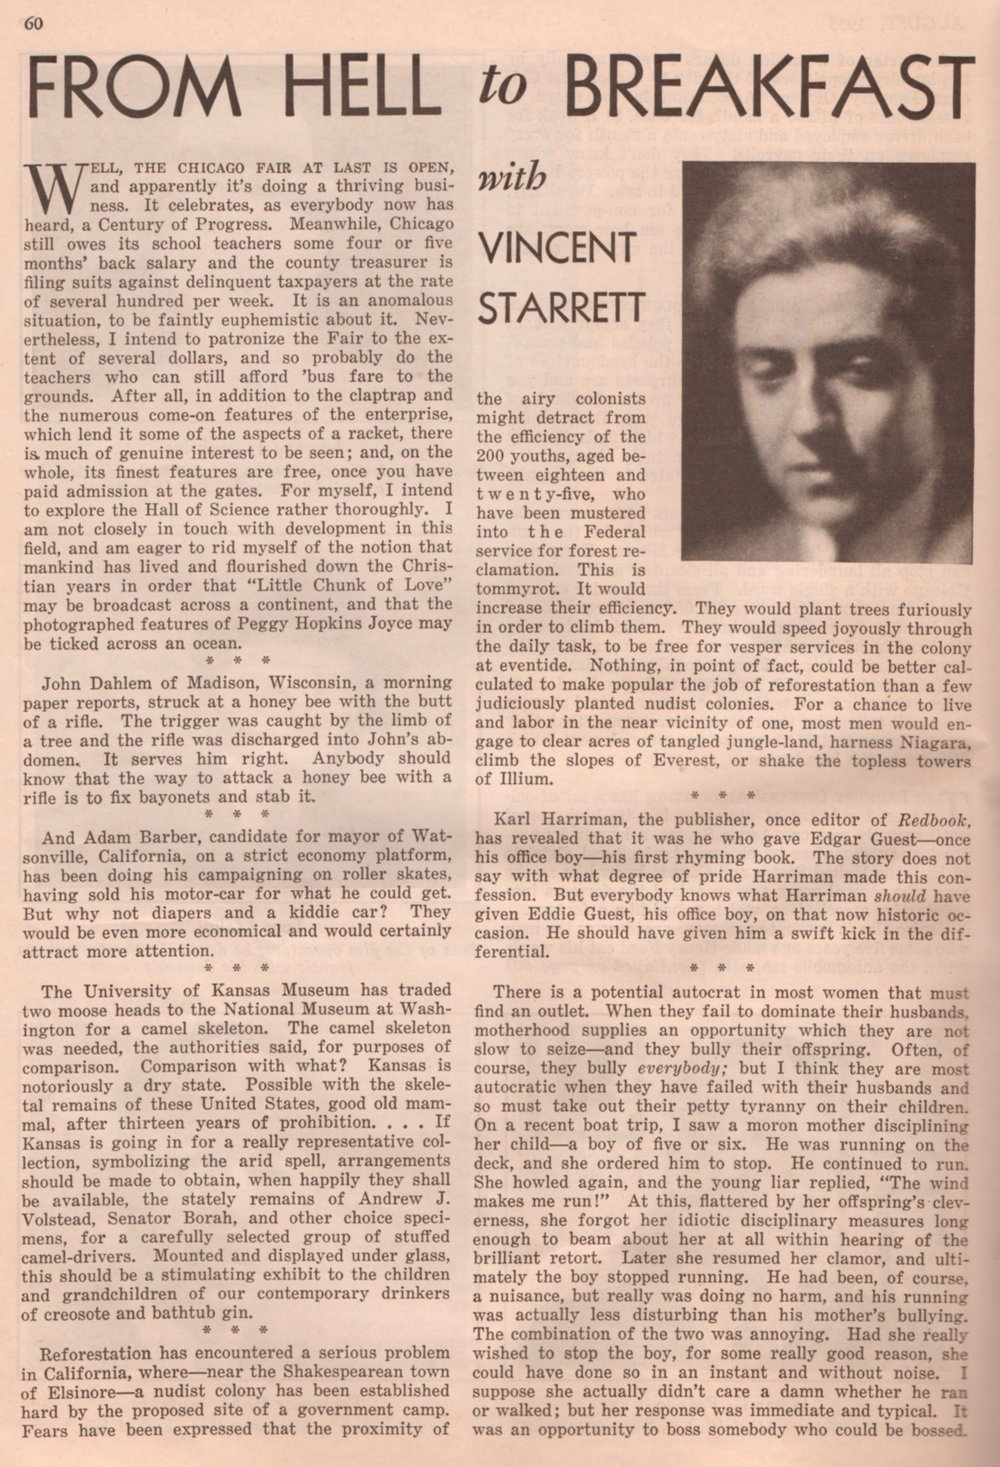 So far as I know, this was the only time Starrett had a column in Real America magazine. If you find another, let me know!